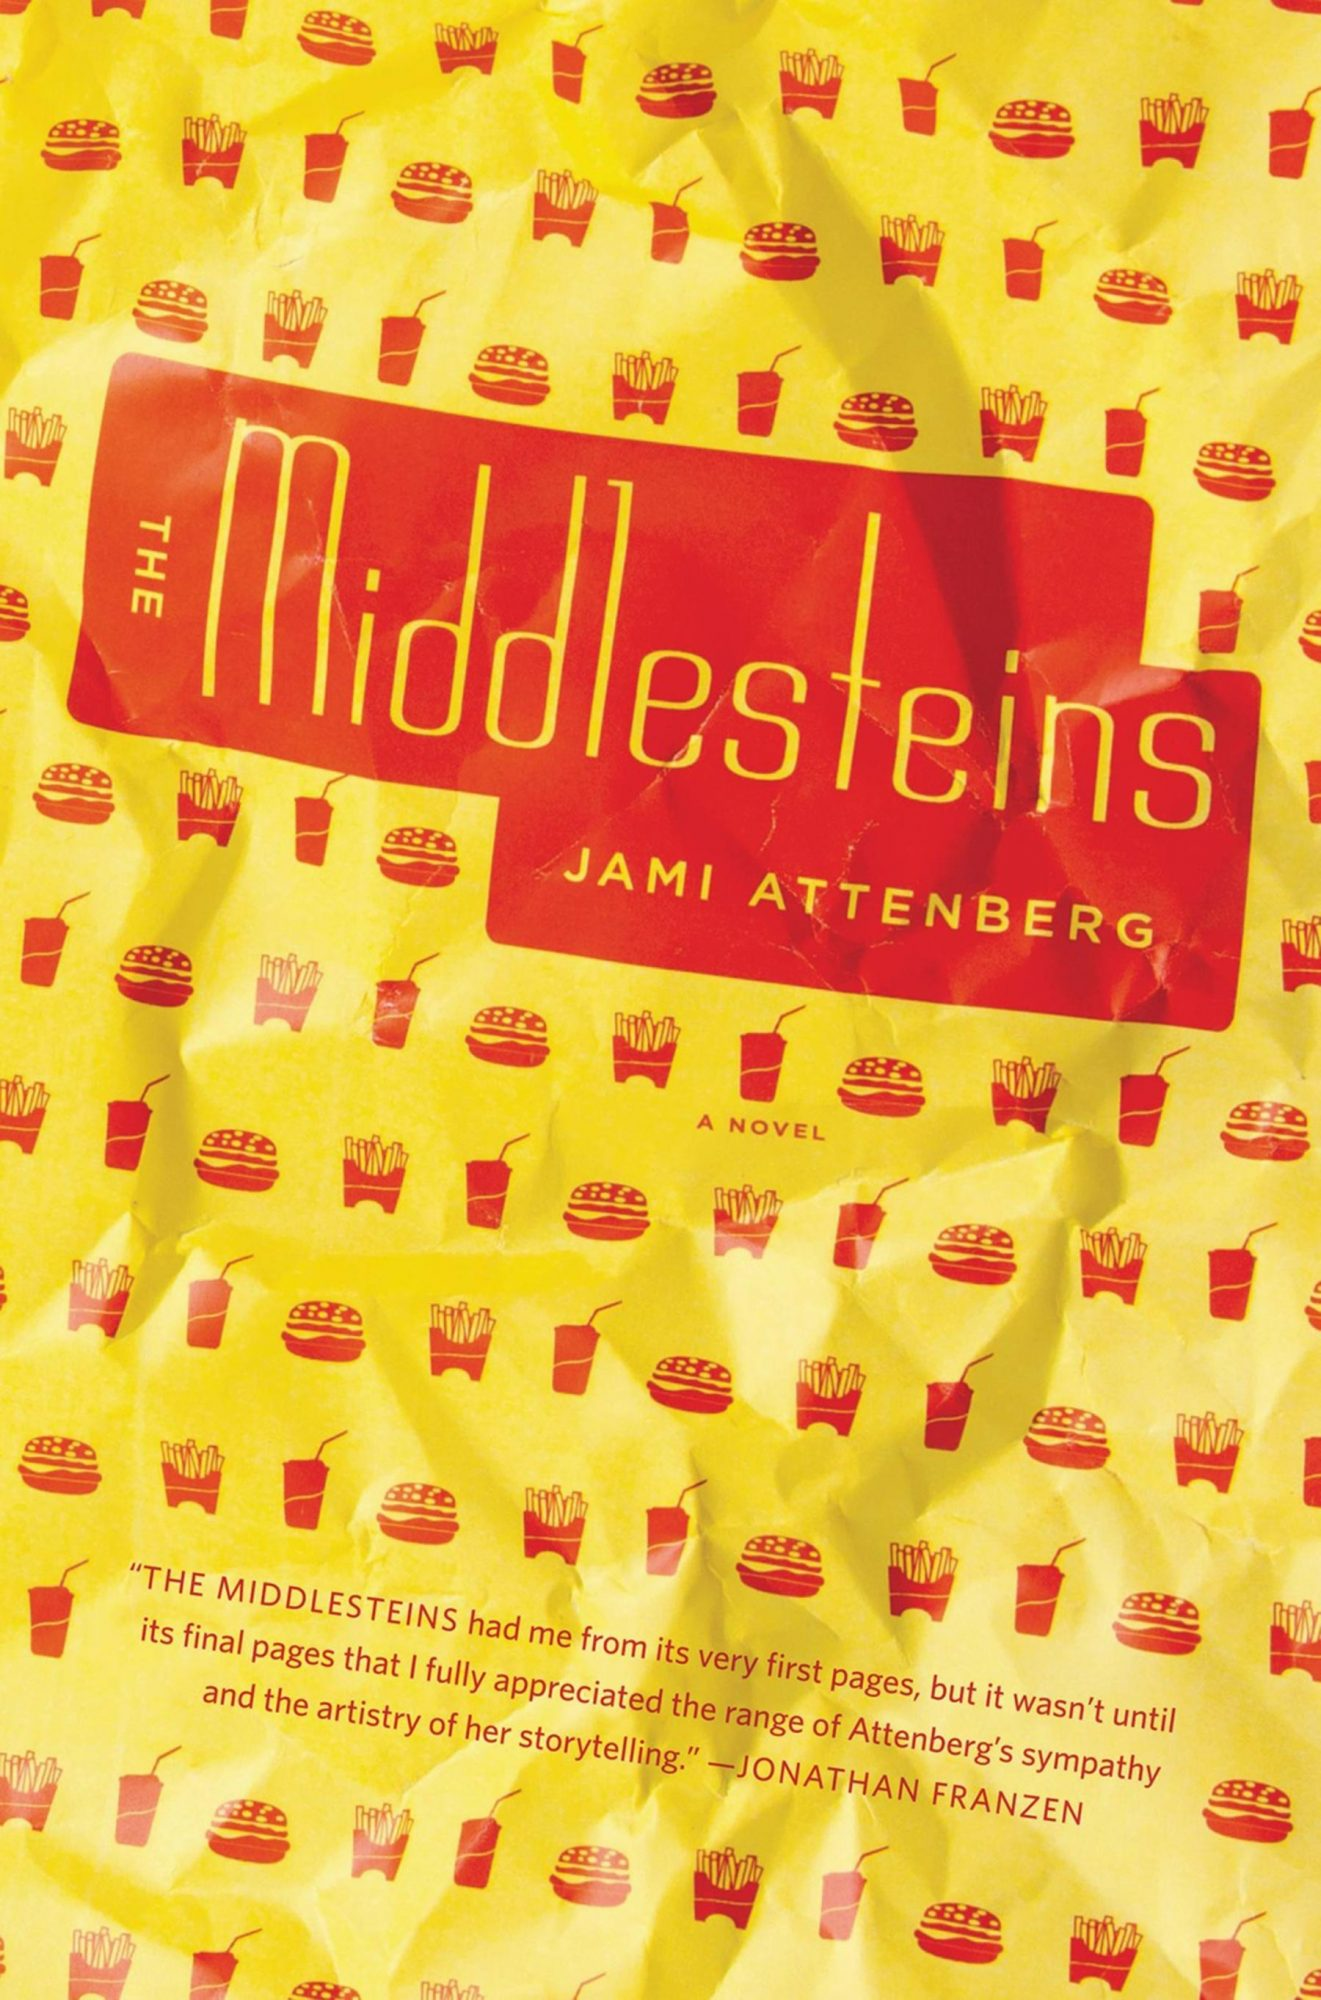 The Middlesteins (10/23/2012)by Jami Attenberg